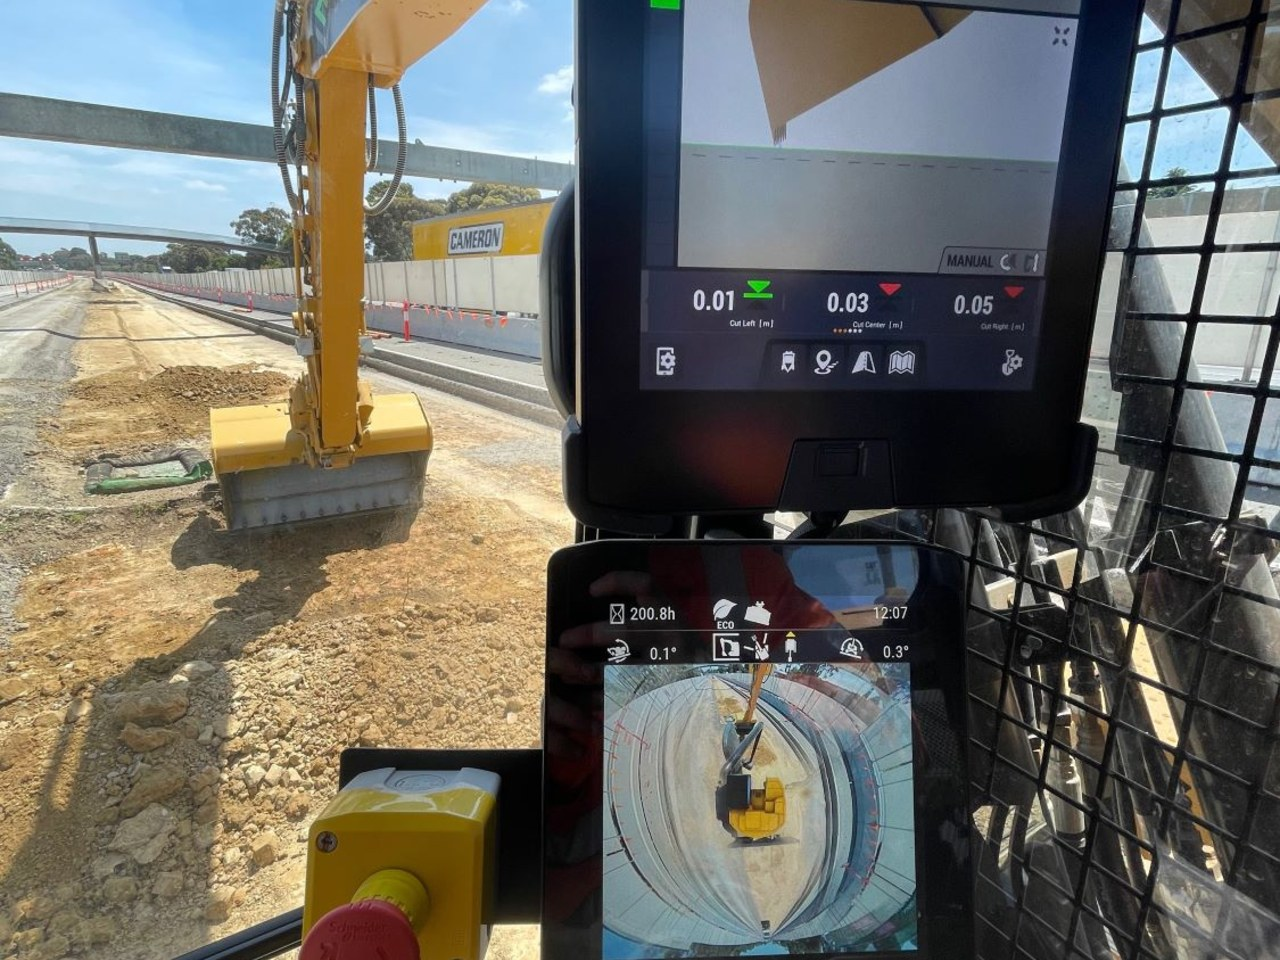 Digital display of the excavator operator's 360-degree view, eliminating blind spots and revealing safety hazards.